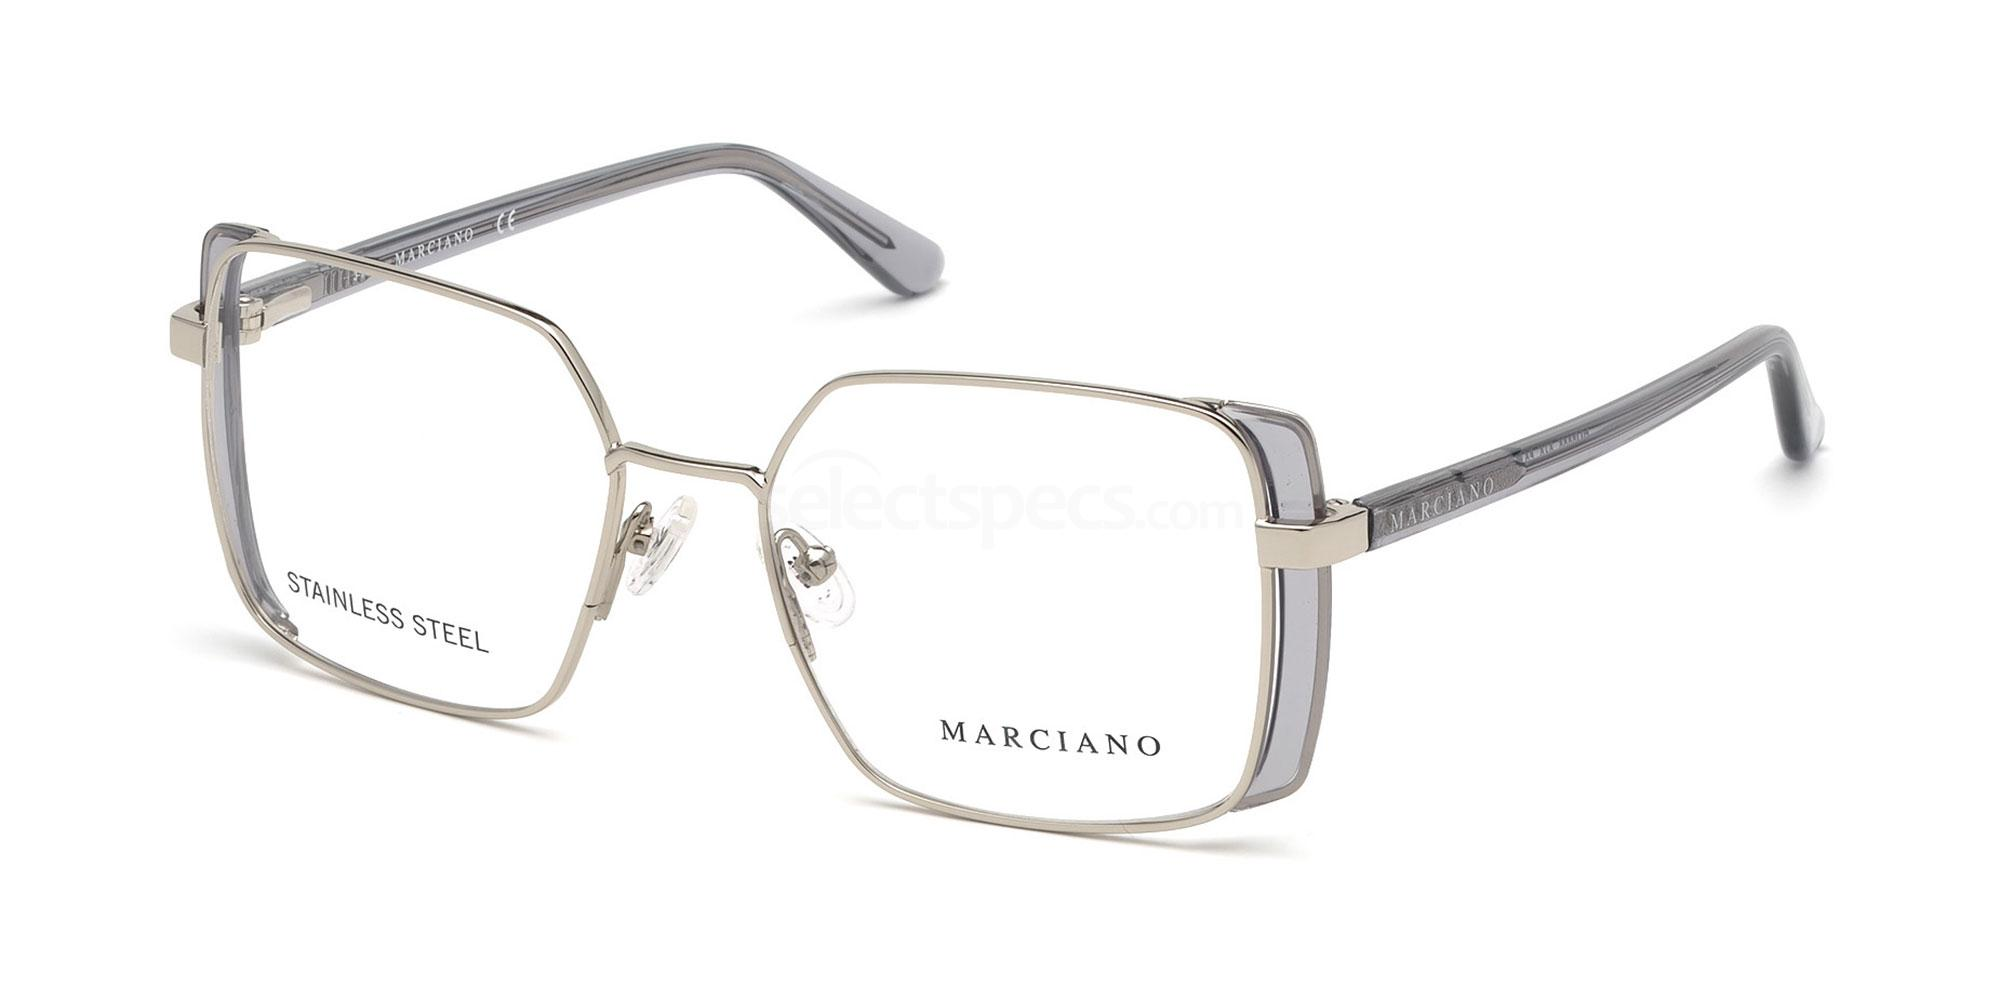 010 GM0333 Glasses, Guess by Marciano